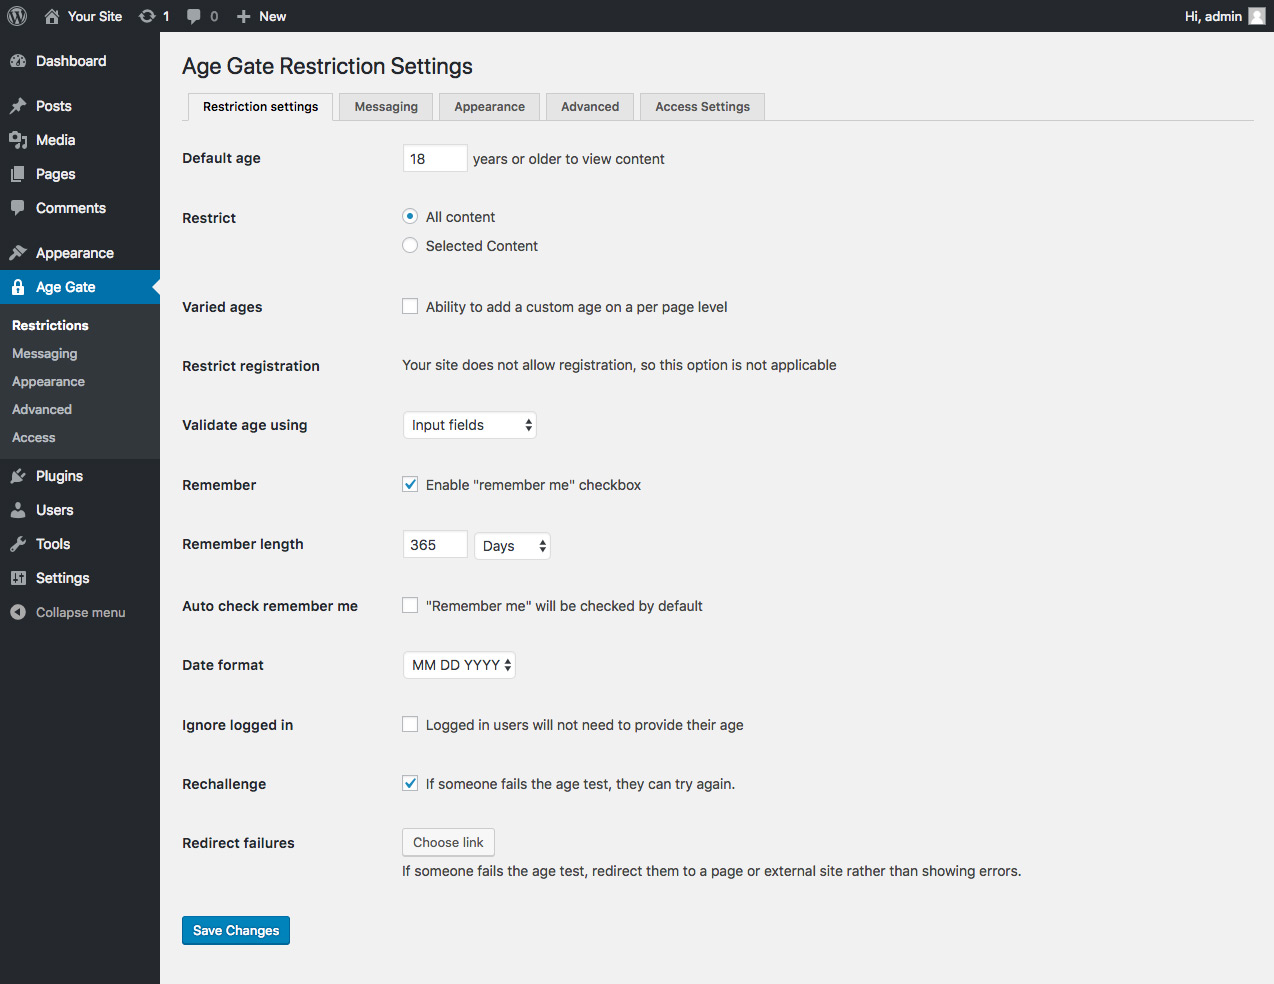 The Restrictions settings page